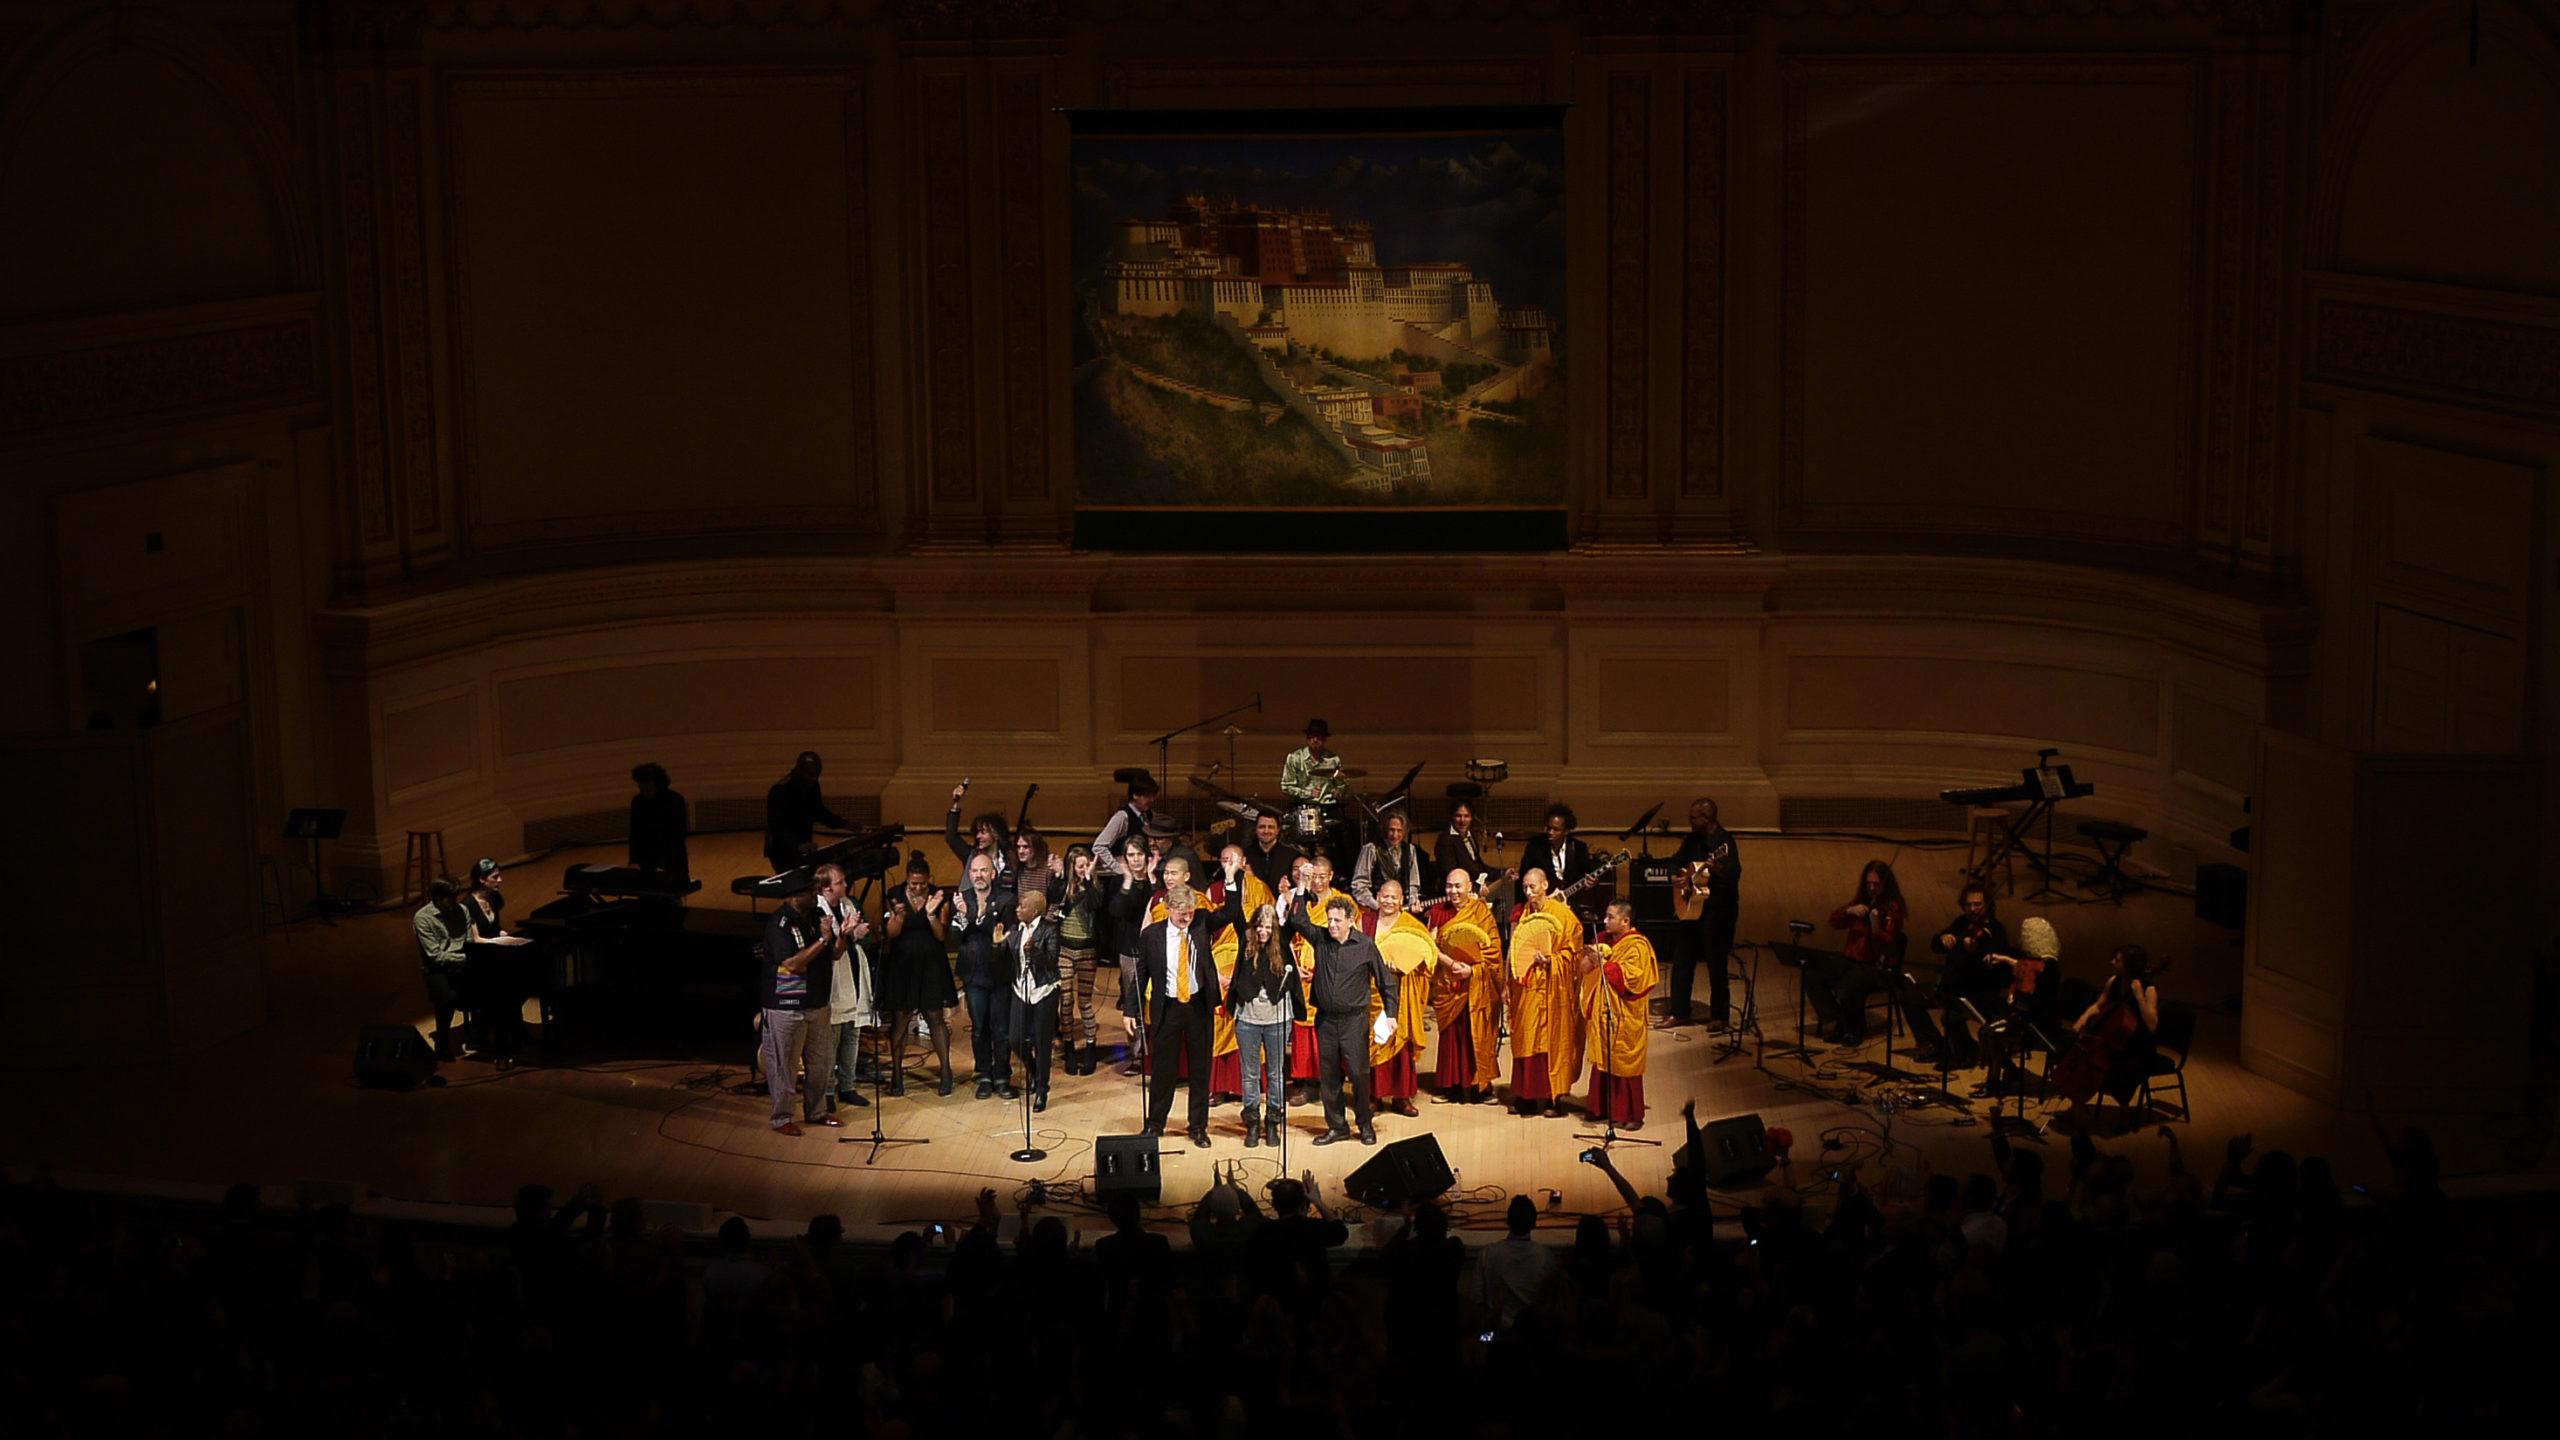 Patti Smith, Robert Thurman and Philip Glass bow among other performers on the stage of Carnegie Hall